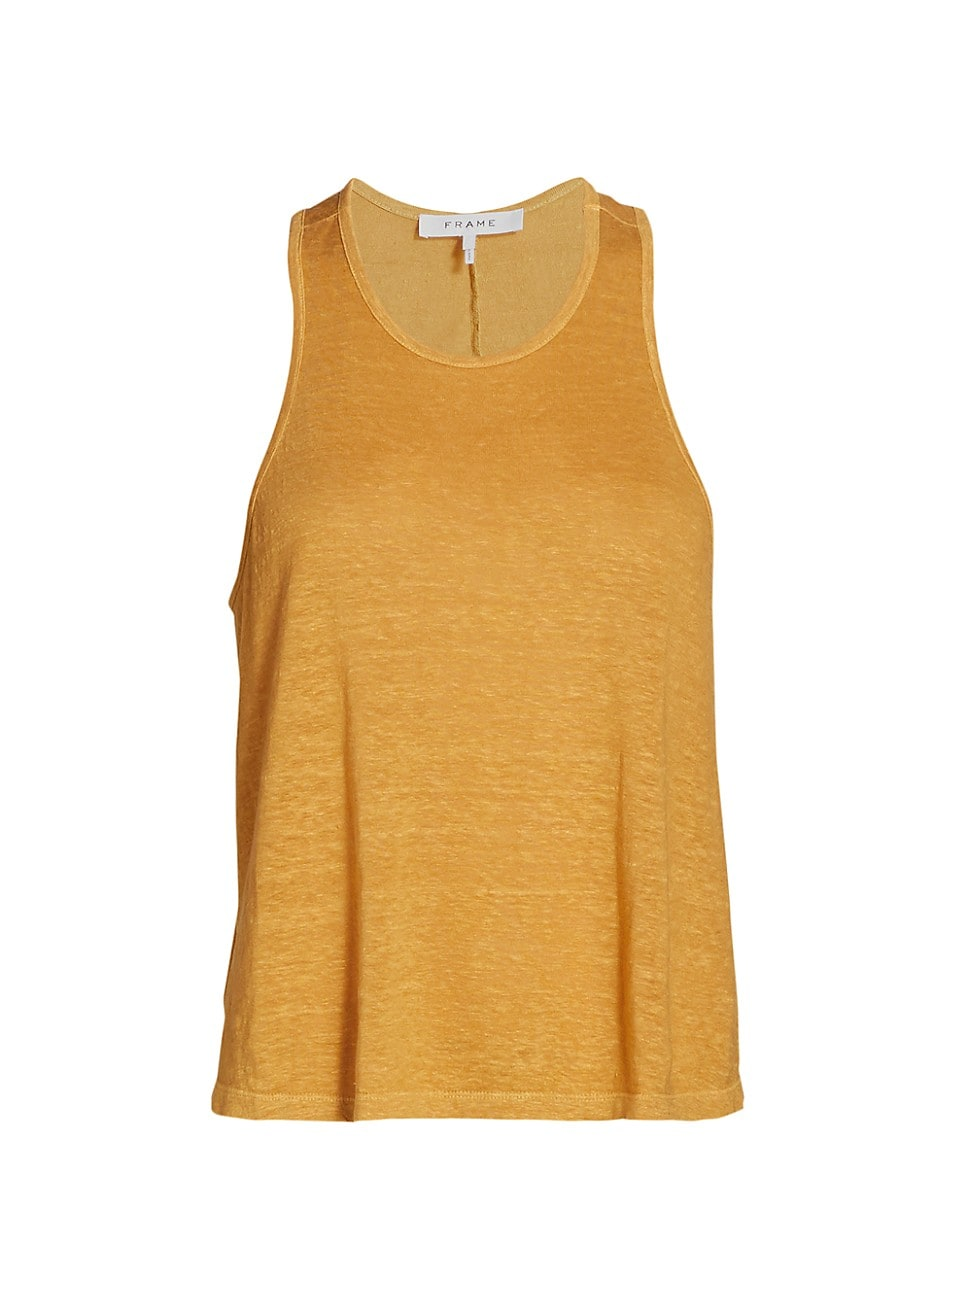 Frame WOMEN'S SWINGY STRIPED LINEN TANK TOP